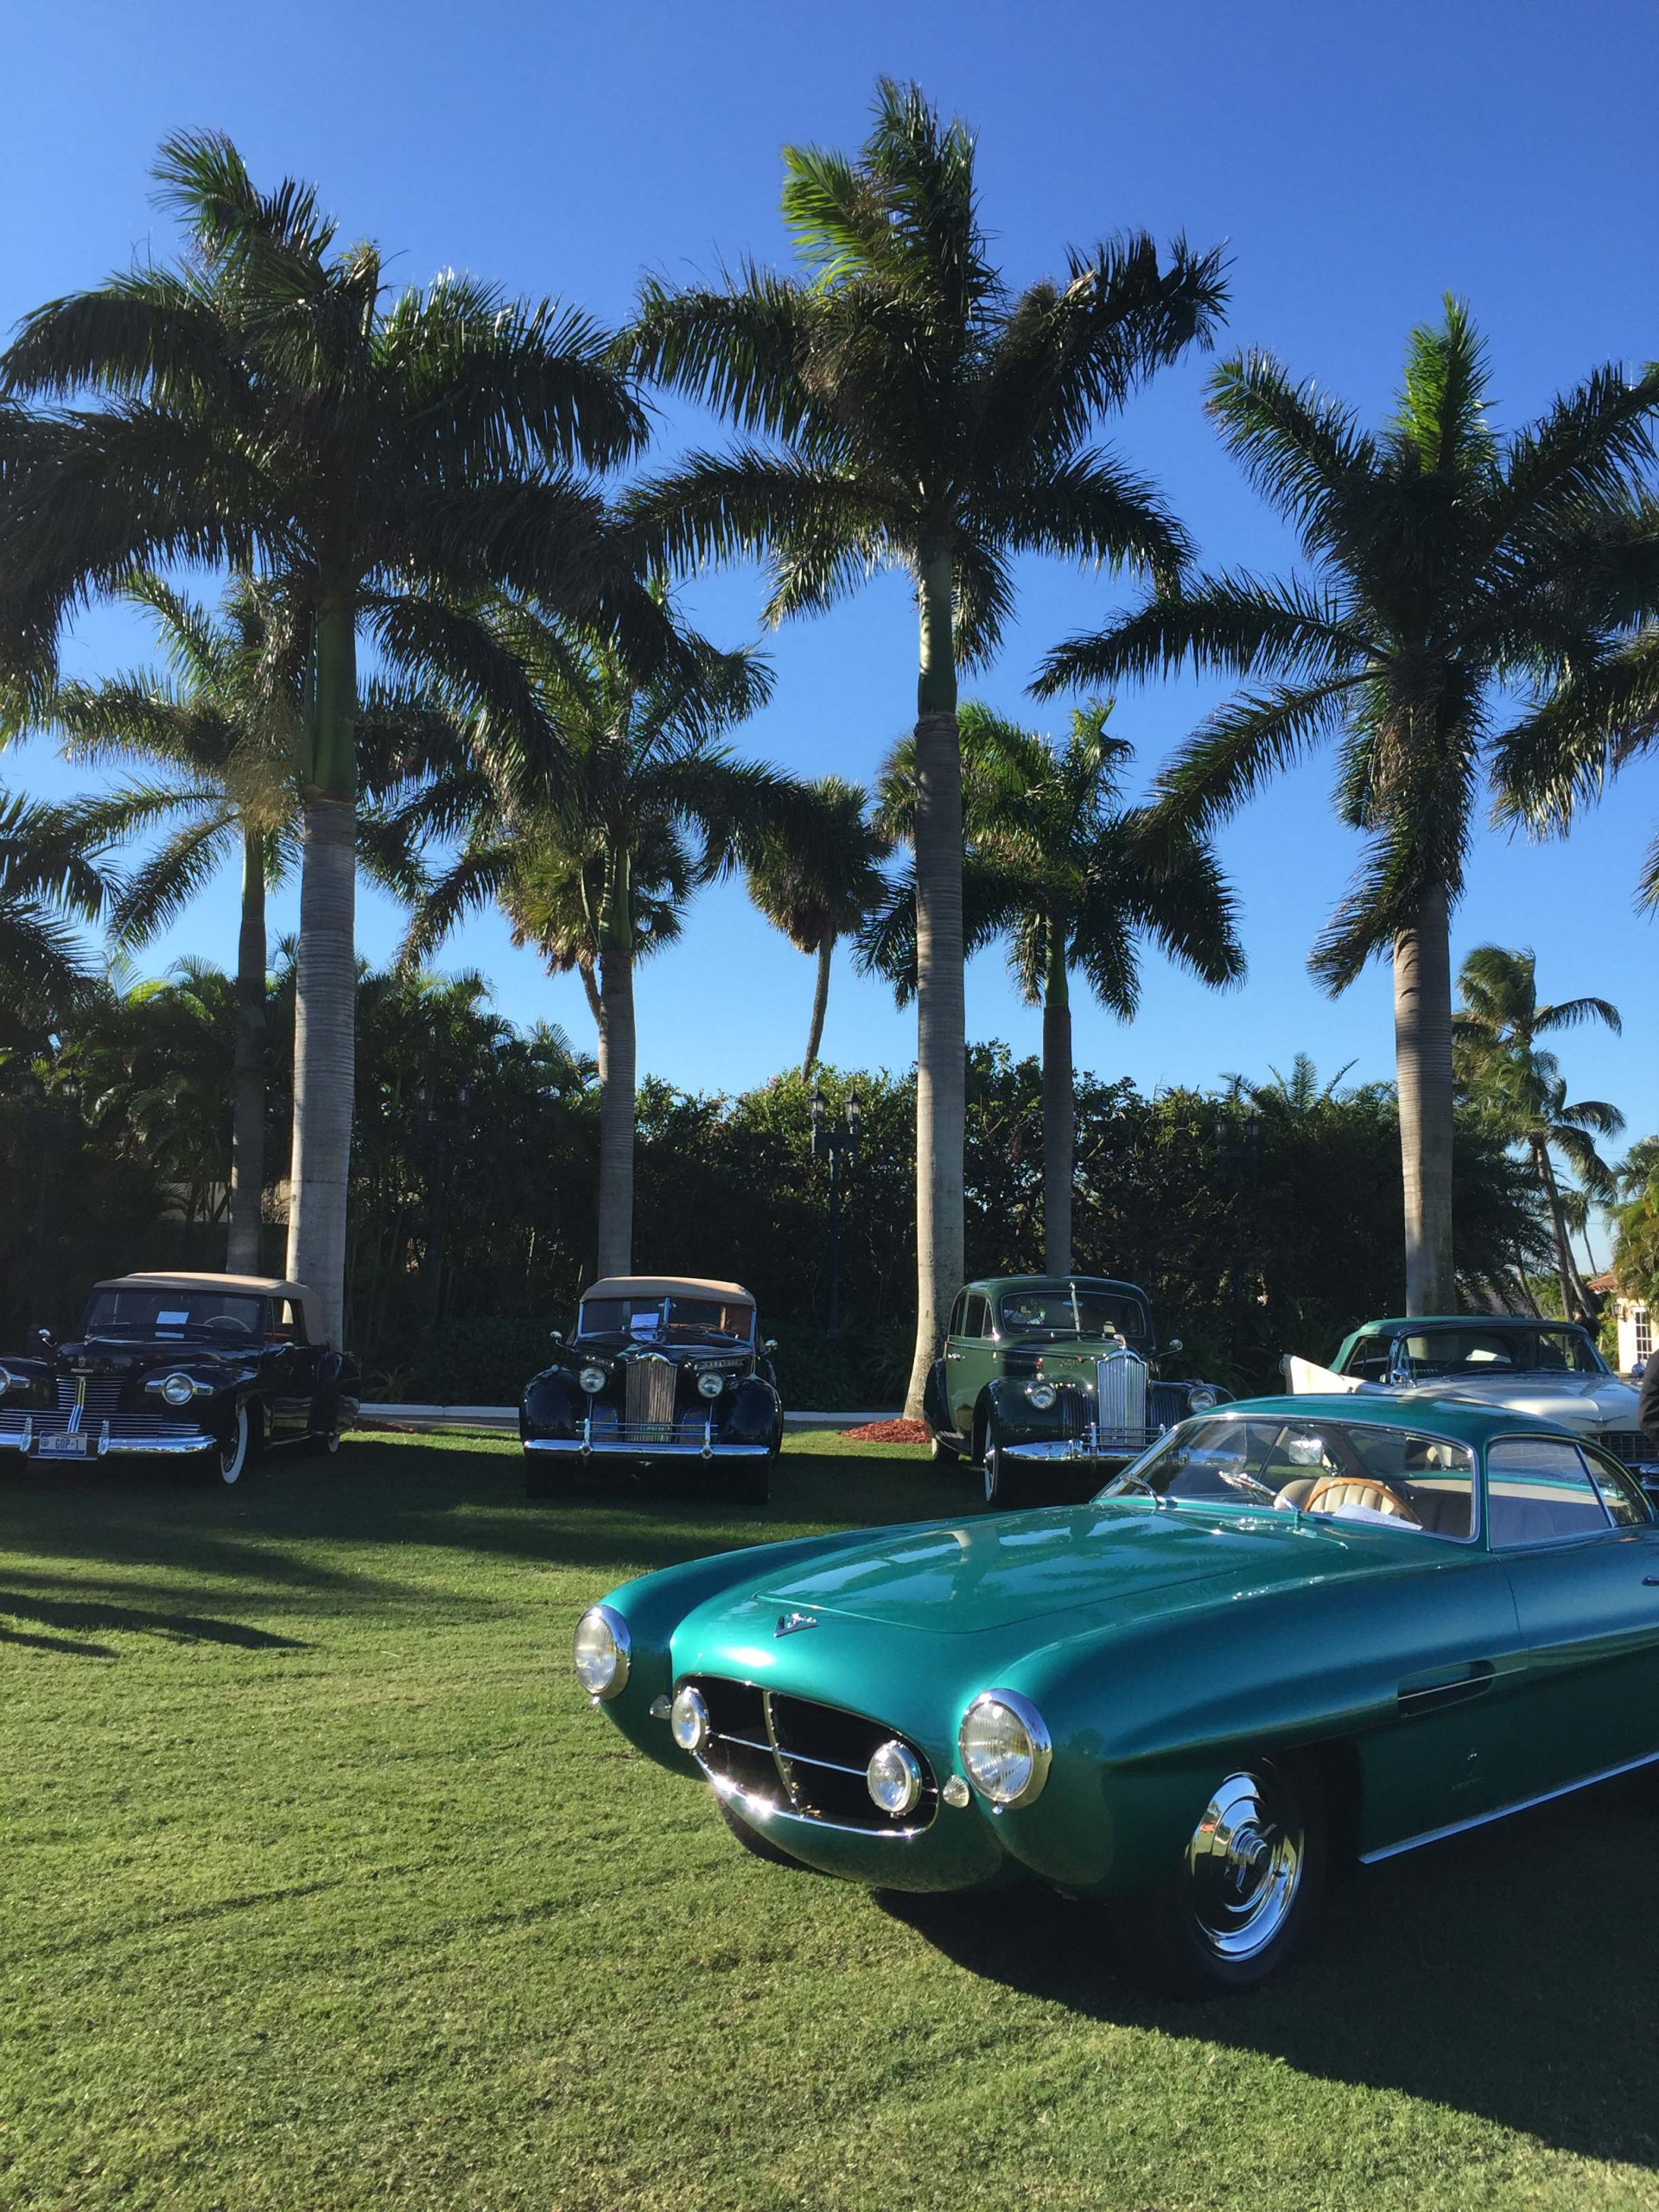 1953 Fiat 8V Supersonic at Mar-a-Lago. Photo by Bradley Price.